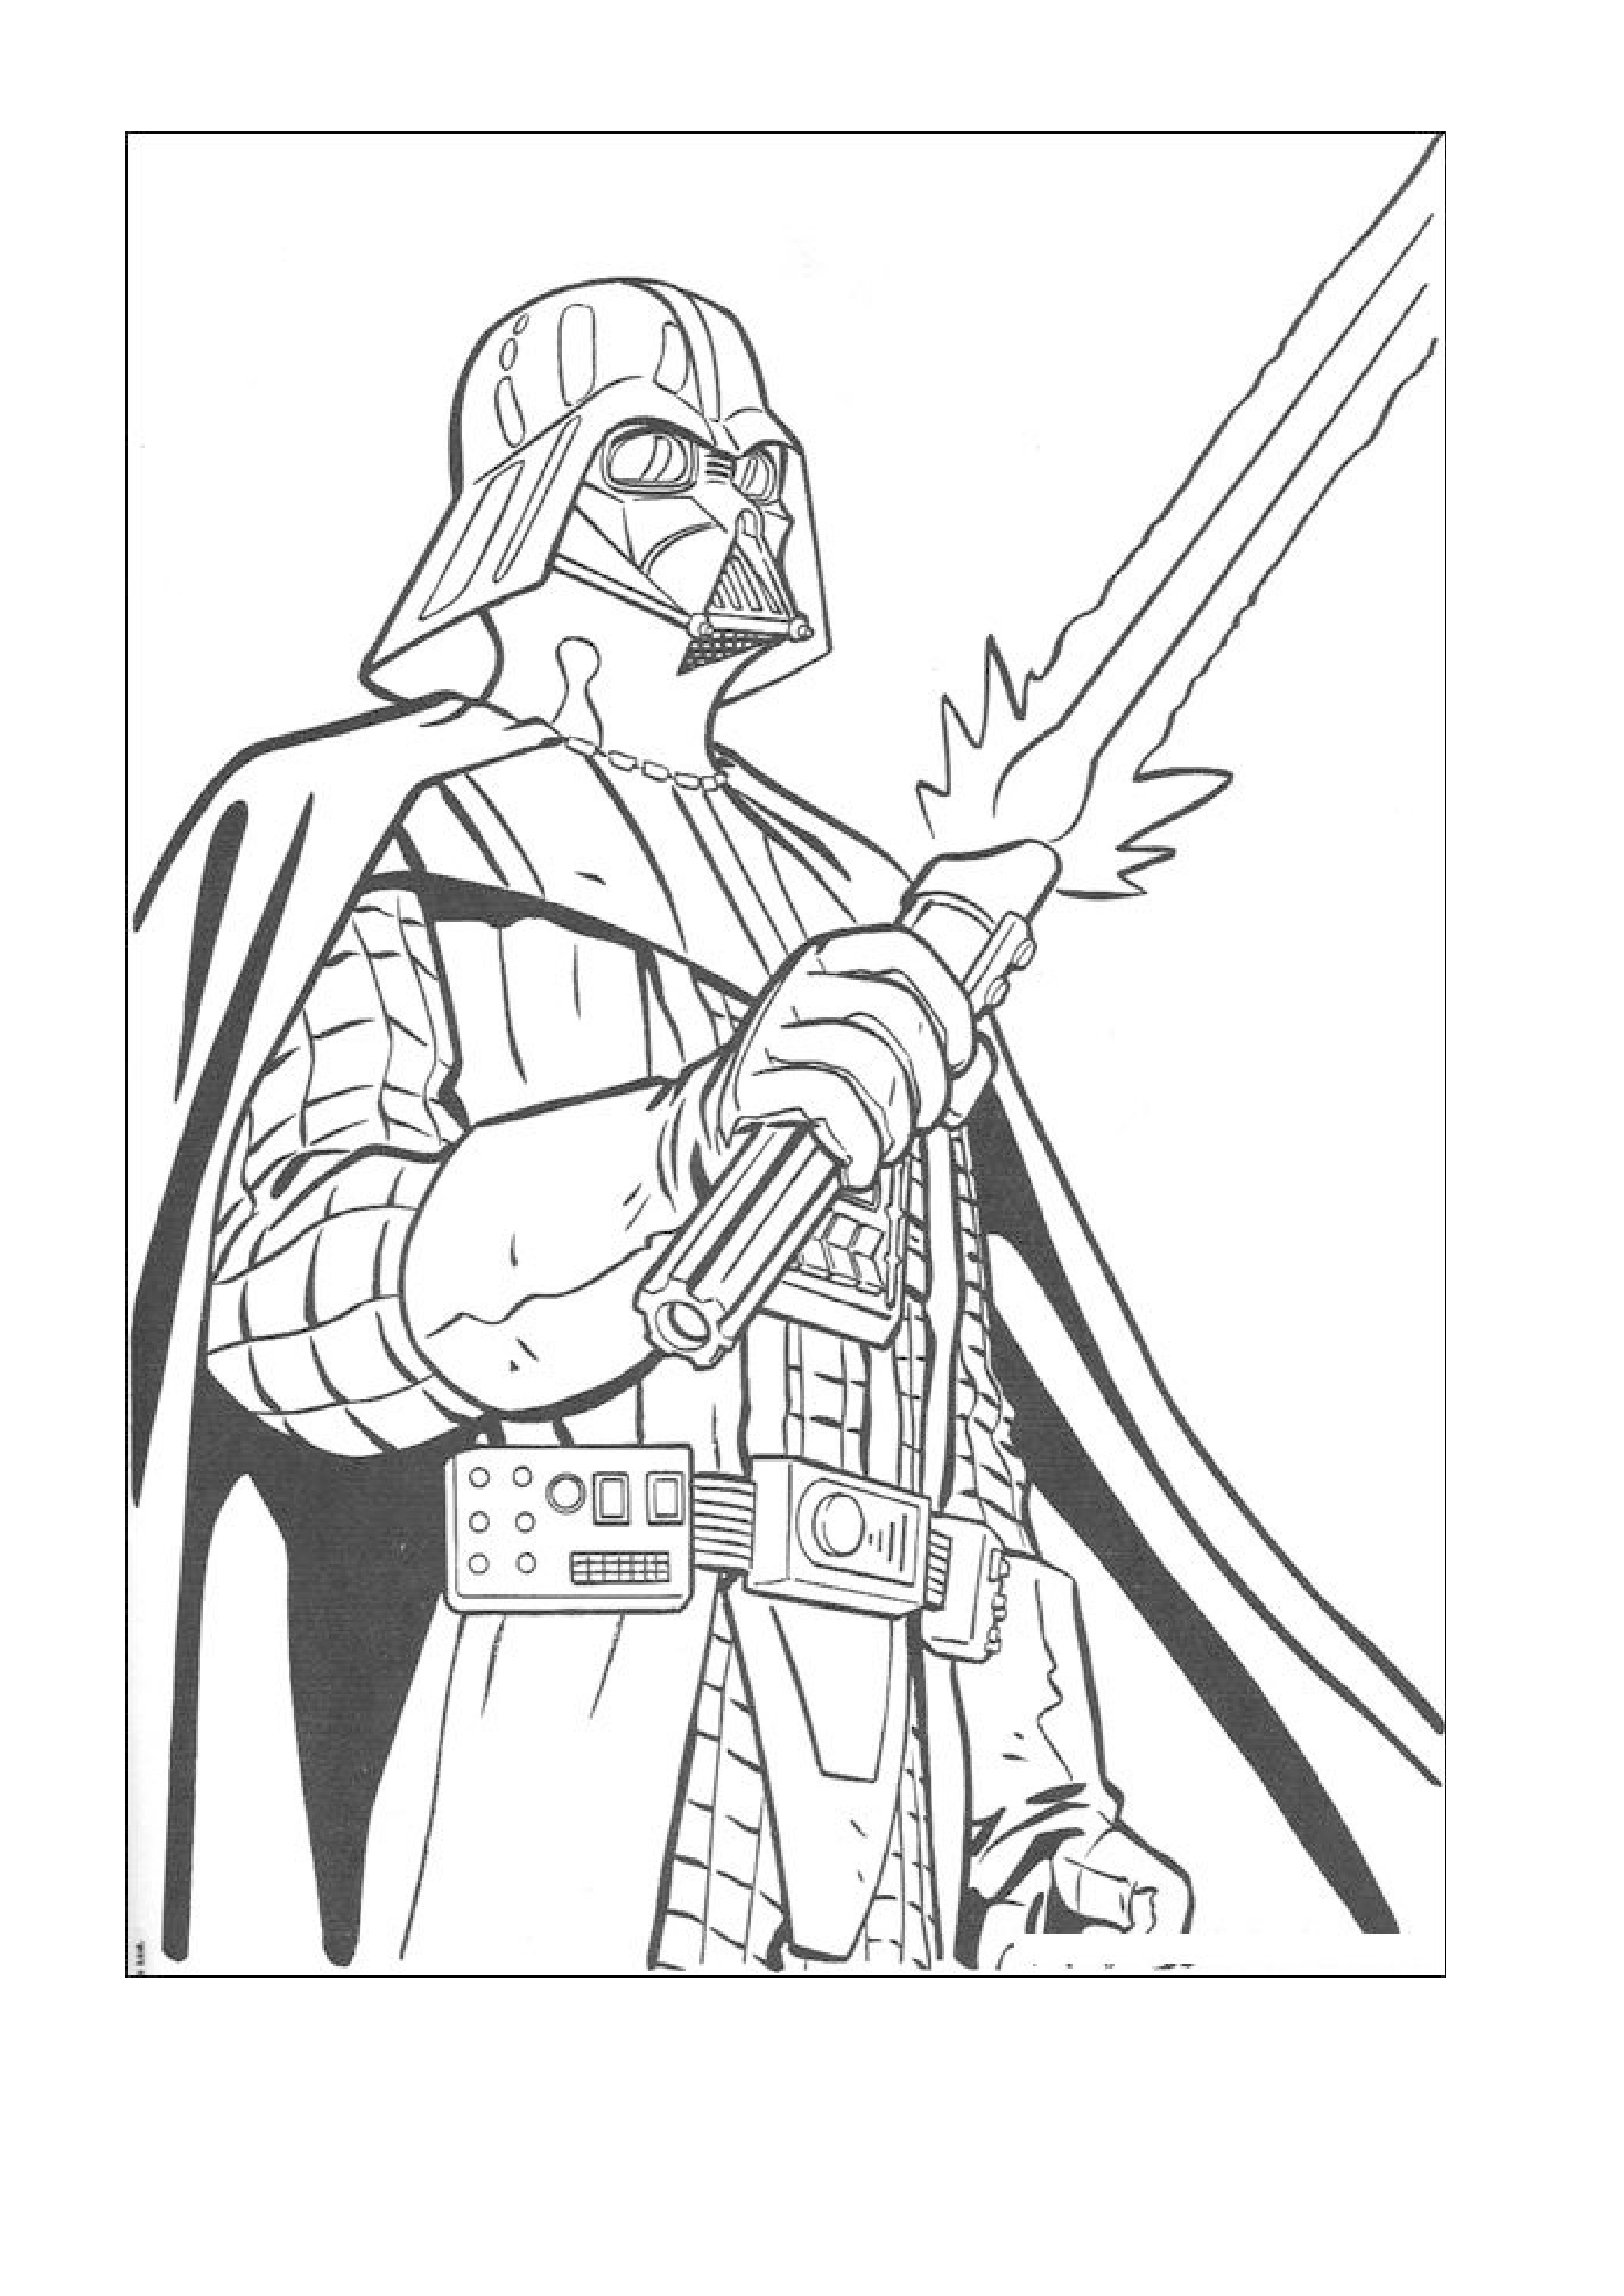 lego star wars pictures to color lego star wars coloring pages free printable neo coloring lego wars star to pictures color